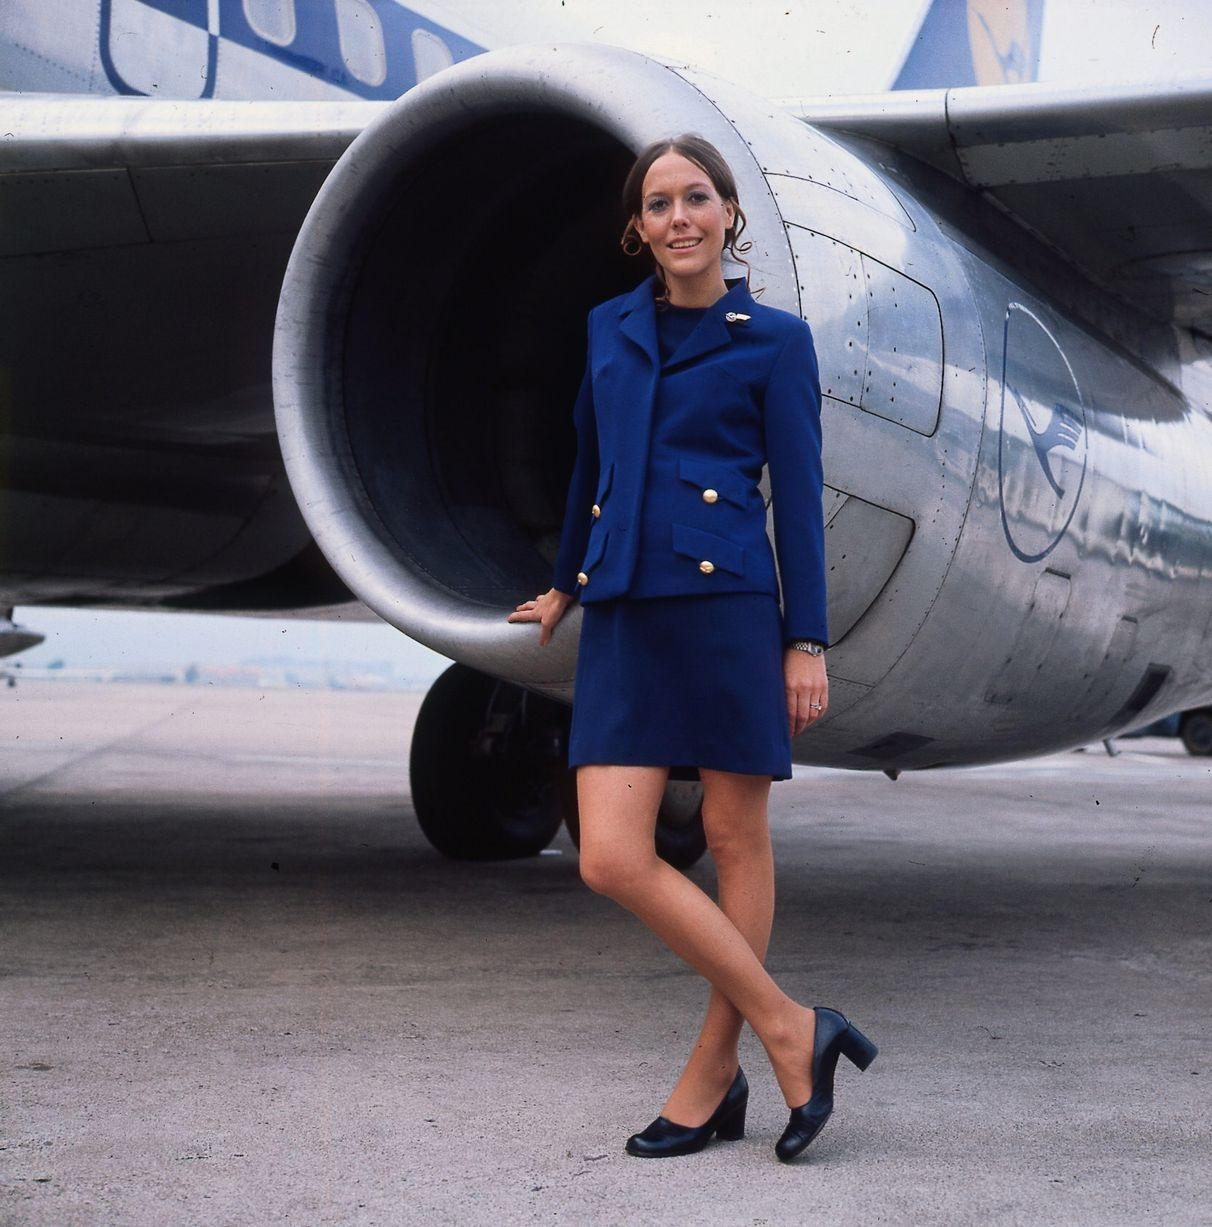 Pictures 100 Years Of Commercial Airline Flight Flight